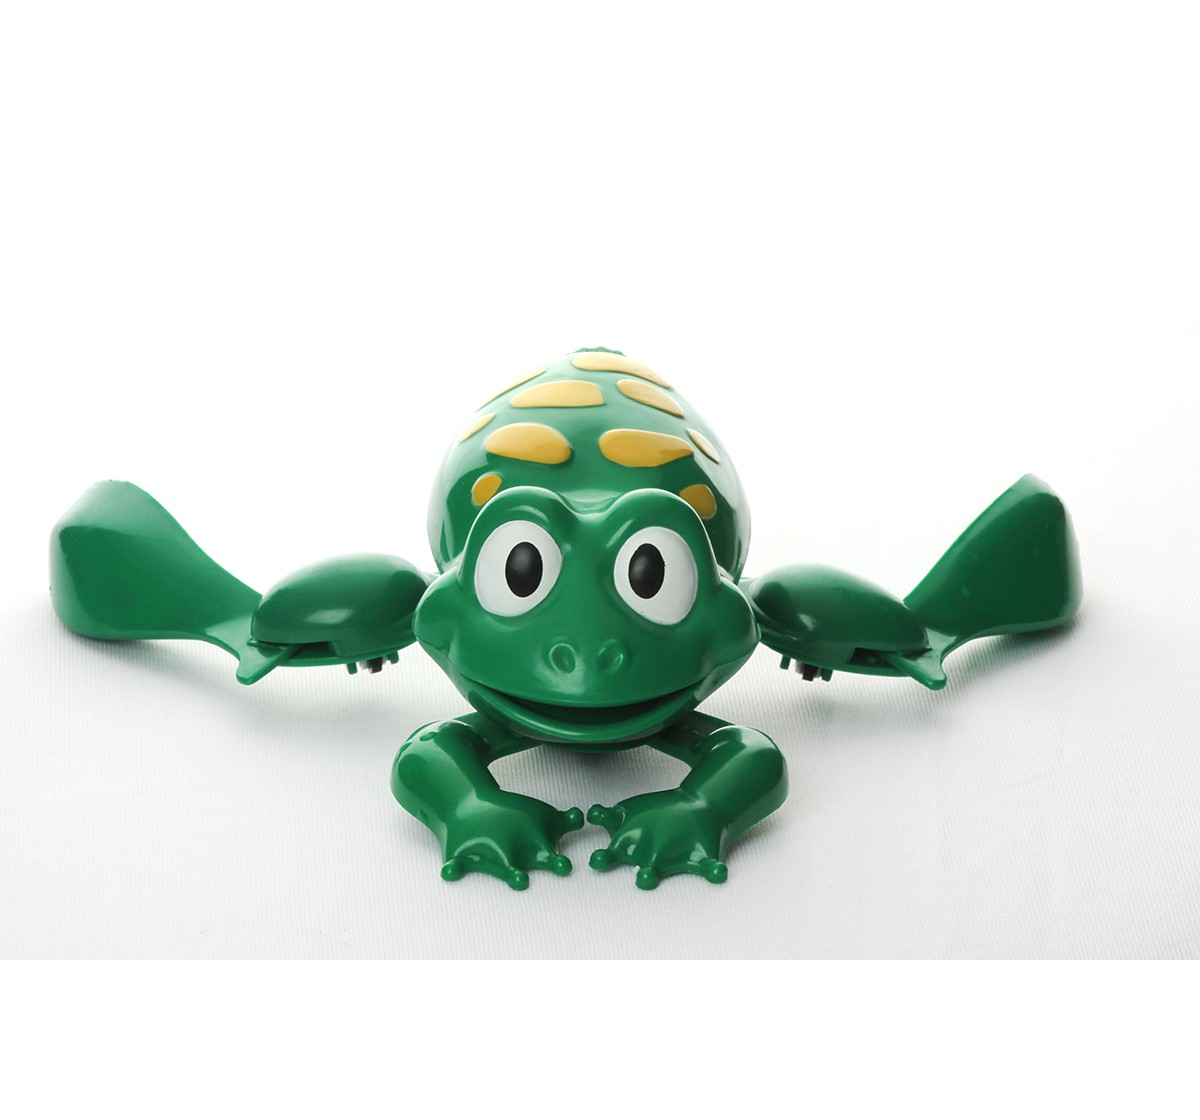 Hamleys Swimming Frog Bath Toy (Green) Bath Toys & Accessories for Kids age 12M+ (Green)